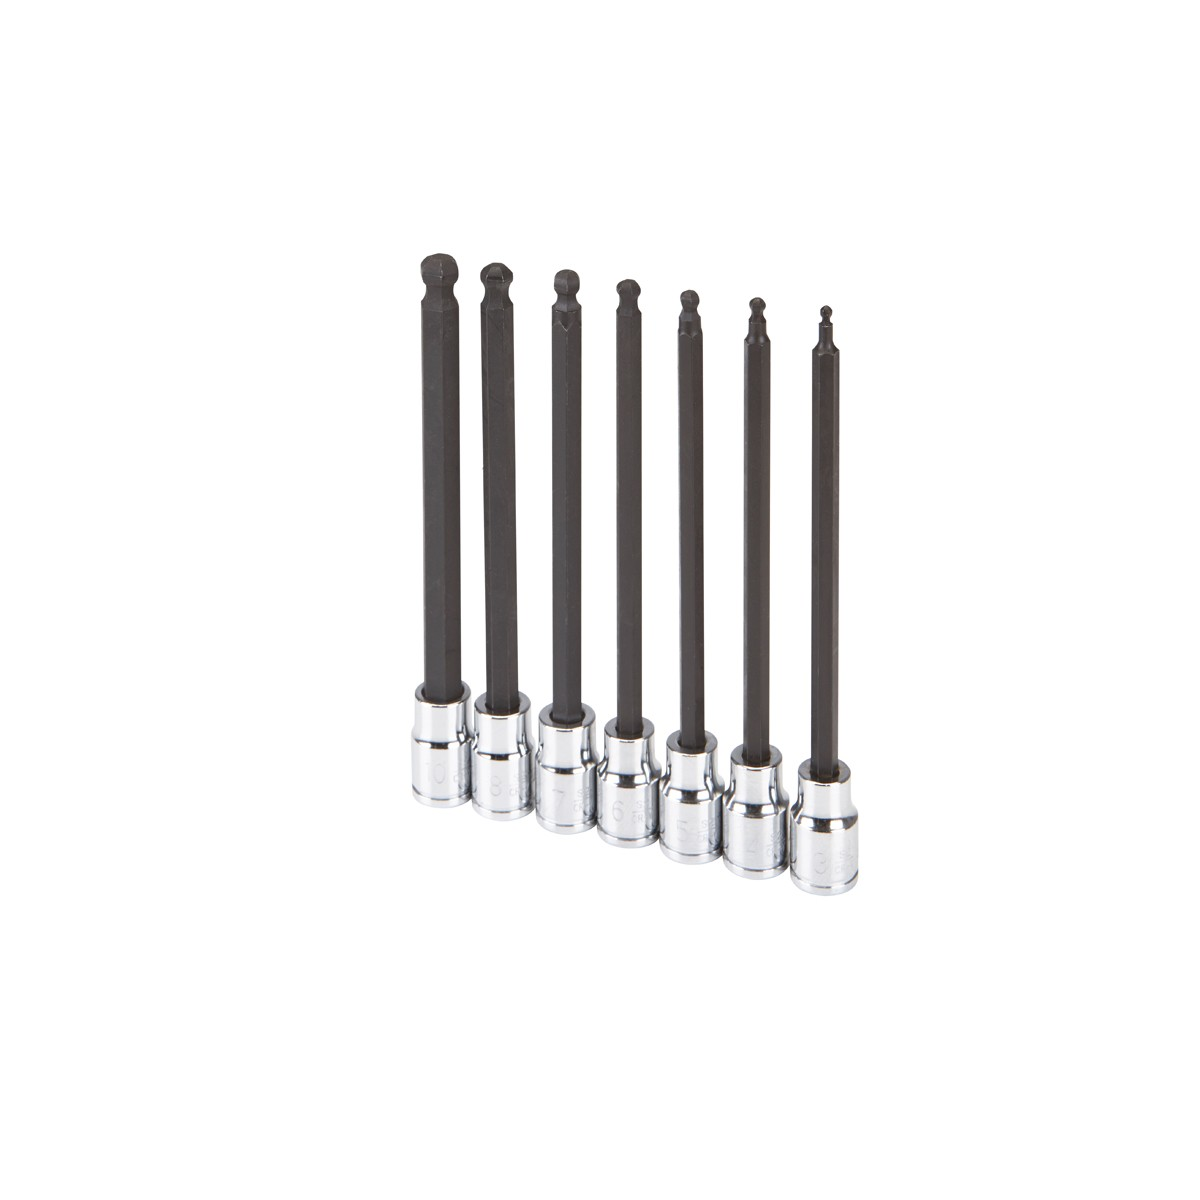 7 Pc 3/8 in. Drive Metric Long Reach Ball Head Hex Socket Set